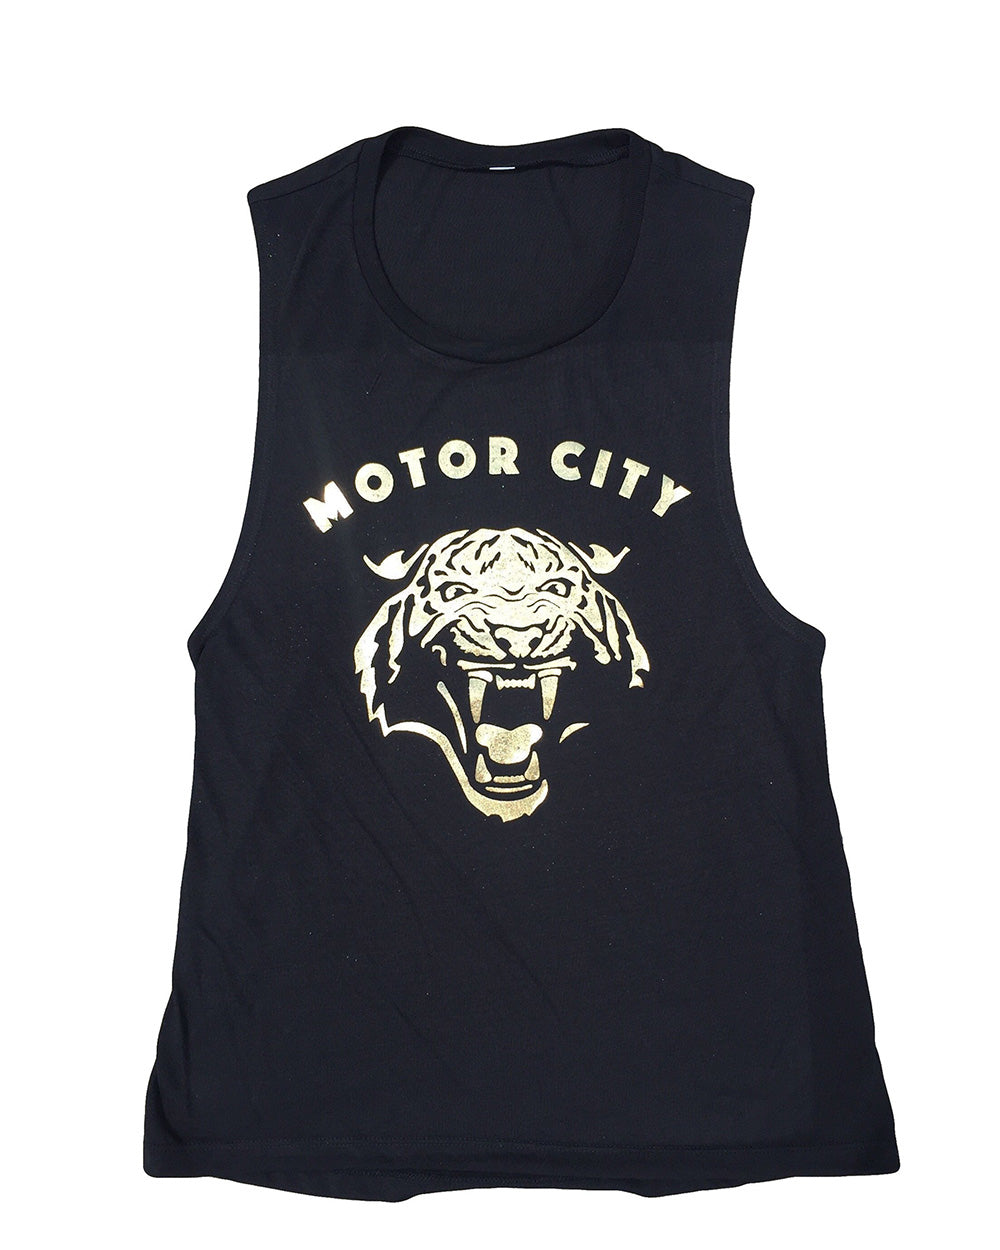 Motor City Cat - Women's -  Gold Foil Muscle Tank Top - Black - The Great Lakes State